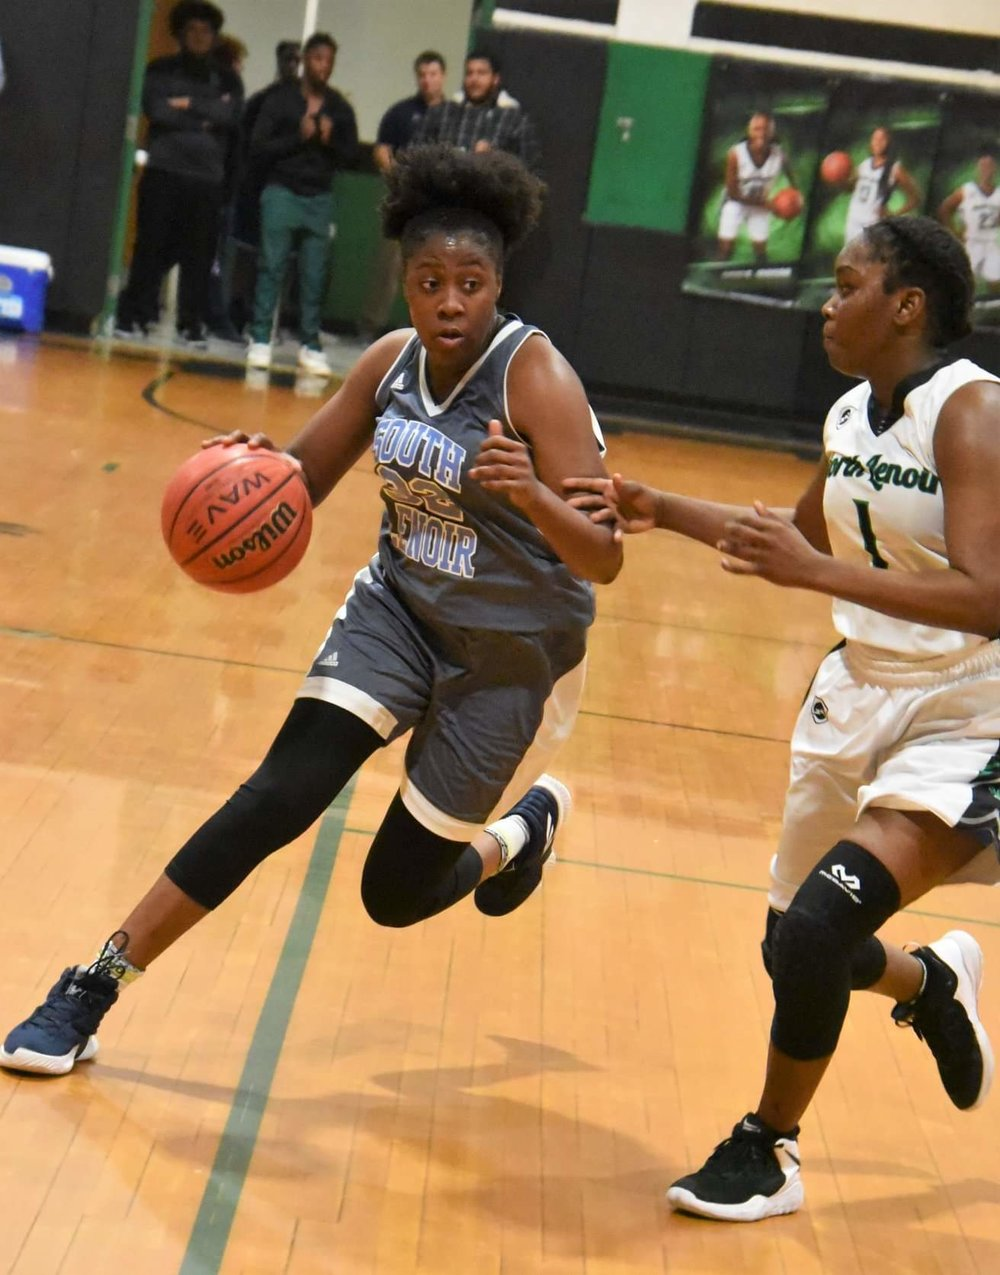 """South Lenoir's Gralicia Jenkins drives against the defense of North Lenoir's Emmenia Lynch during Wednesday's contest. Photo by William """"Bud"""" Hardy / Neuse News"""